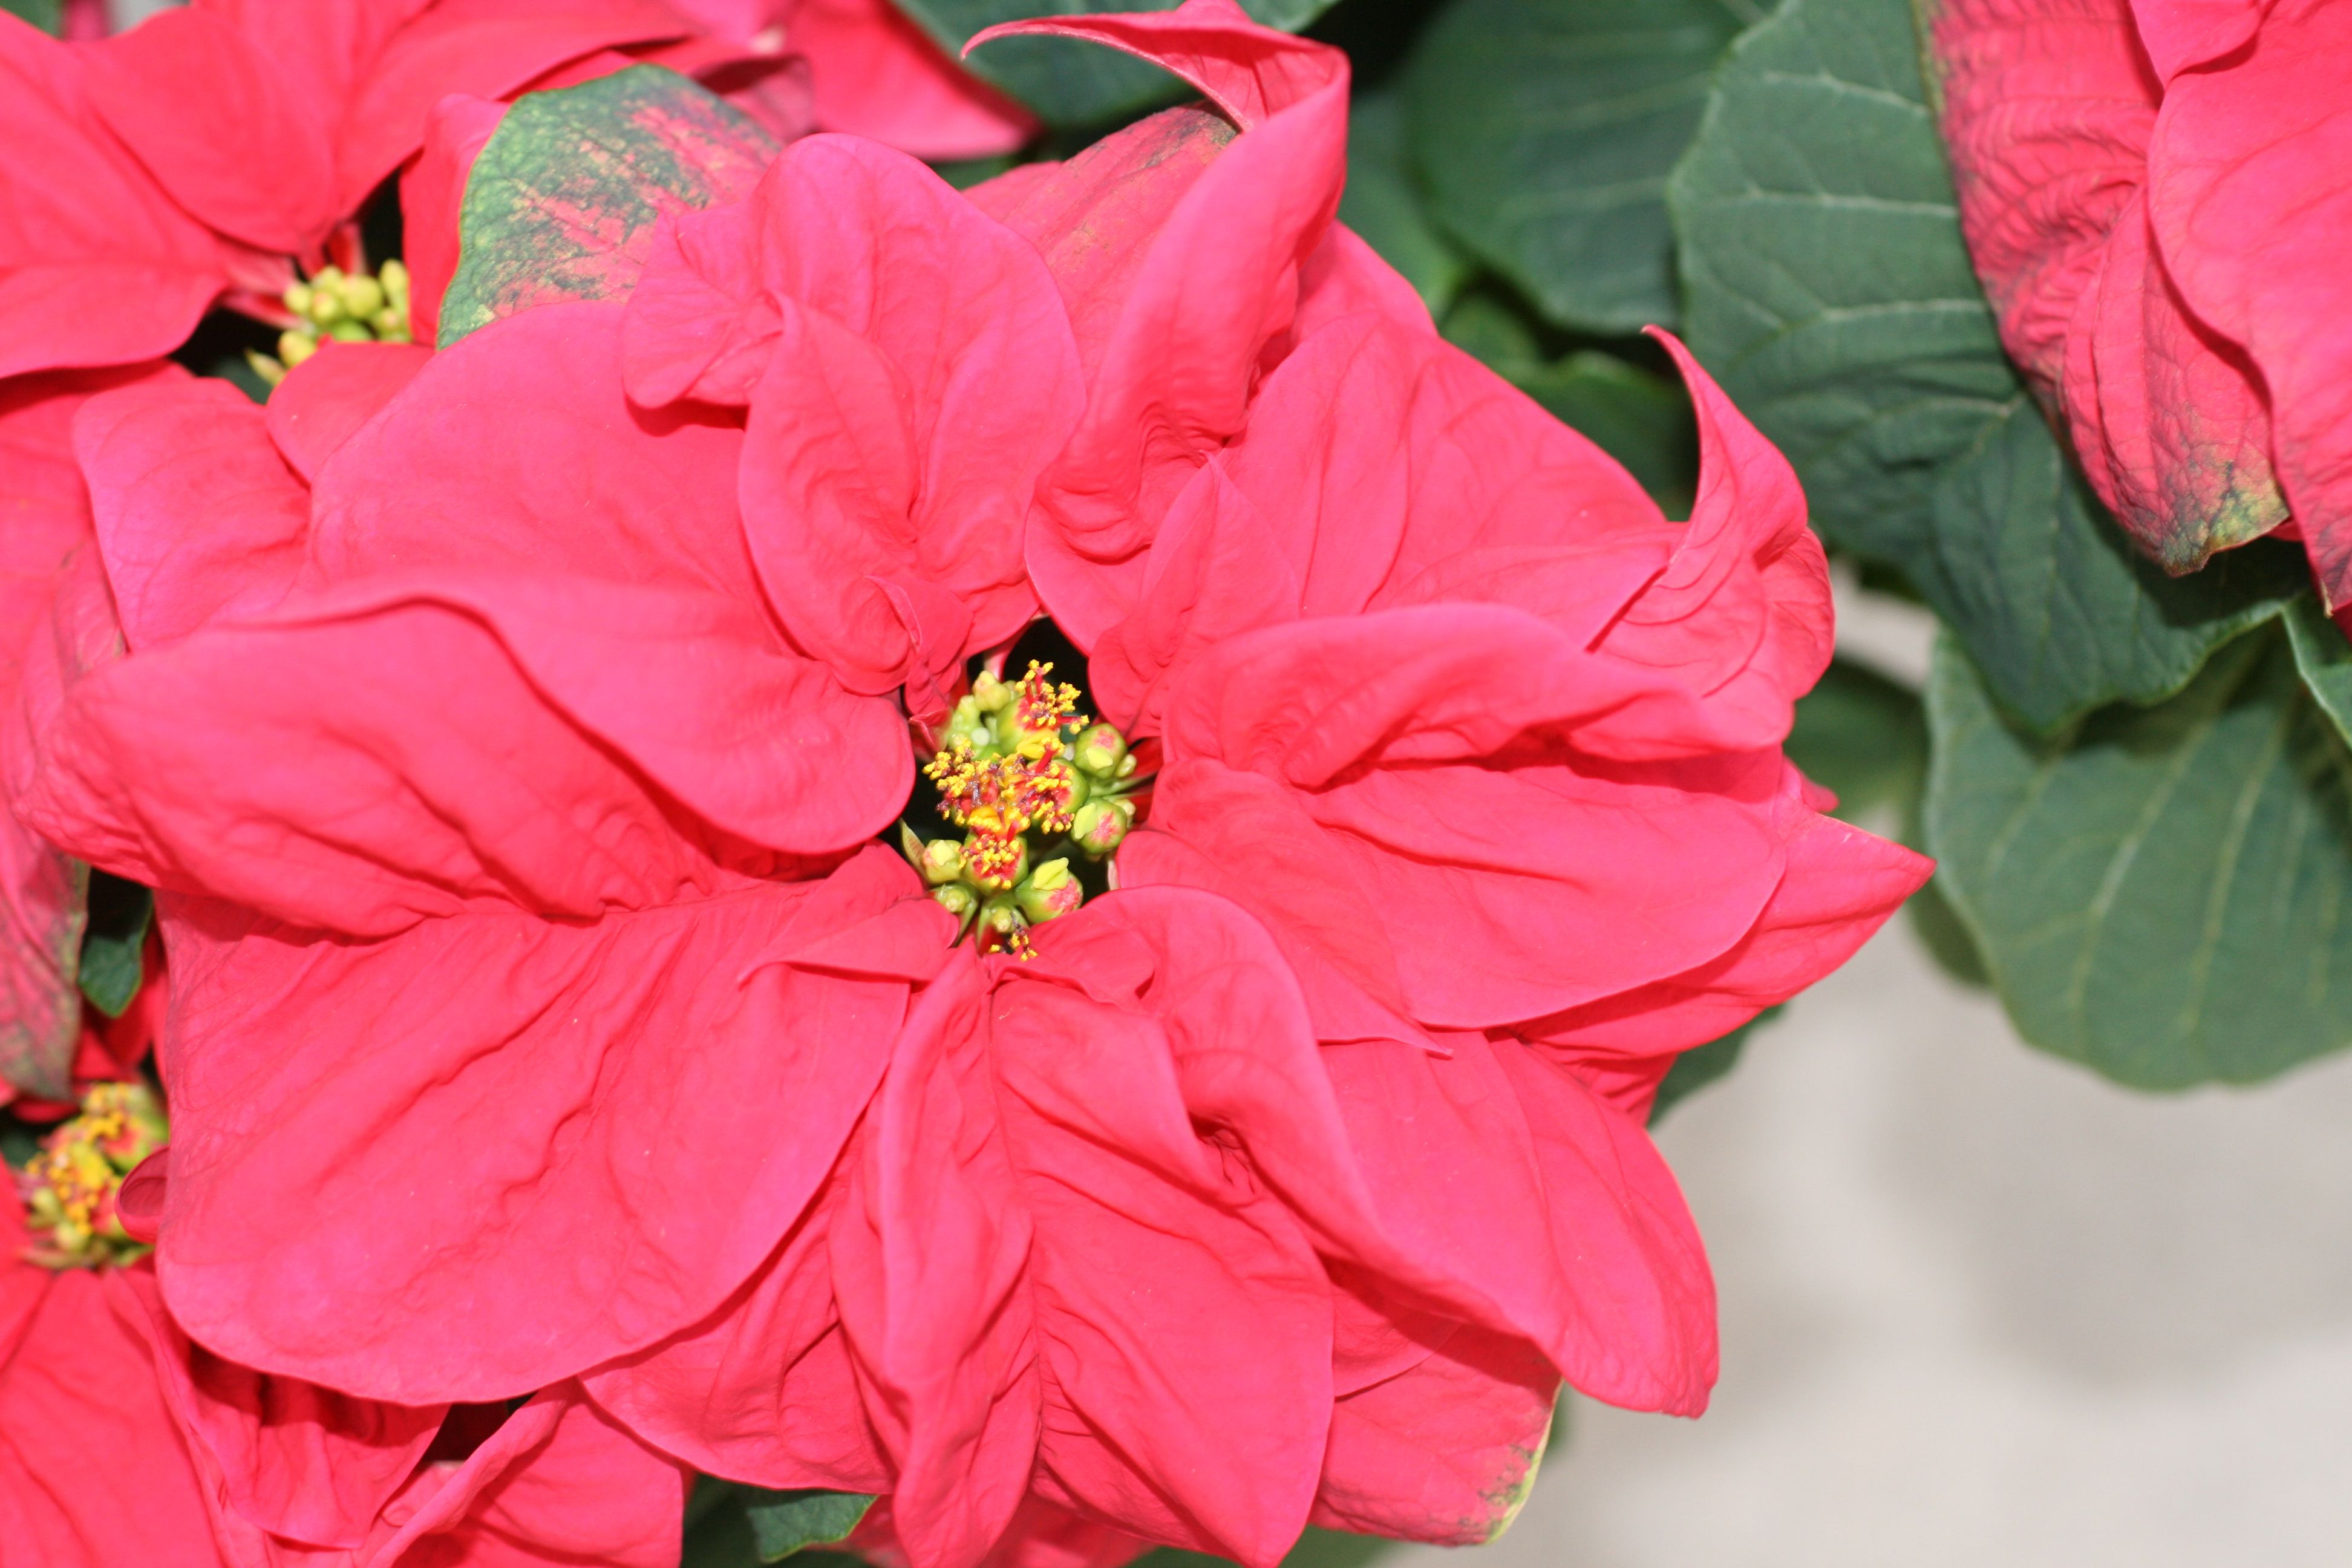 Don T Miss The Annual Uf Poinsettia Show And Sale Poinsettia Flowers Horticulture